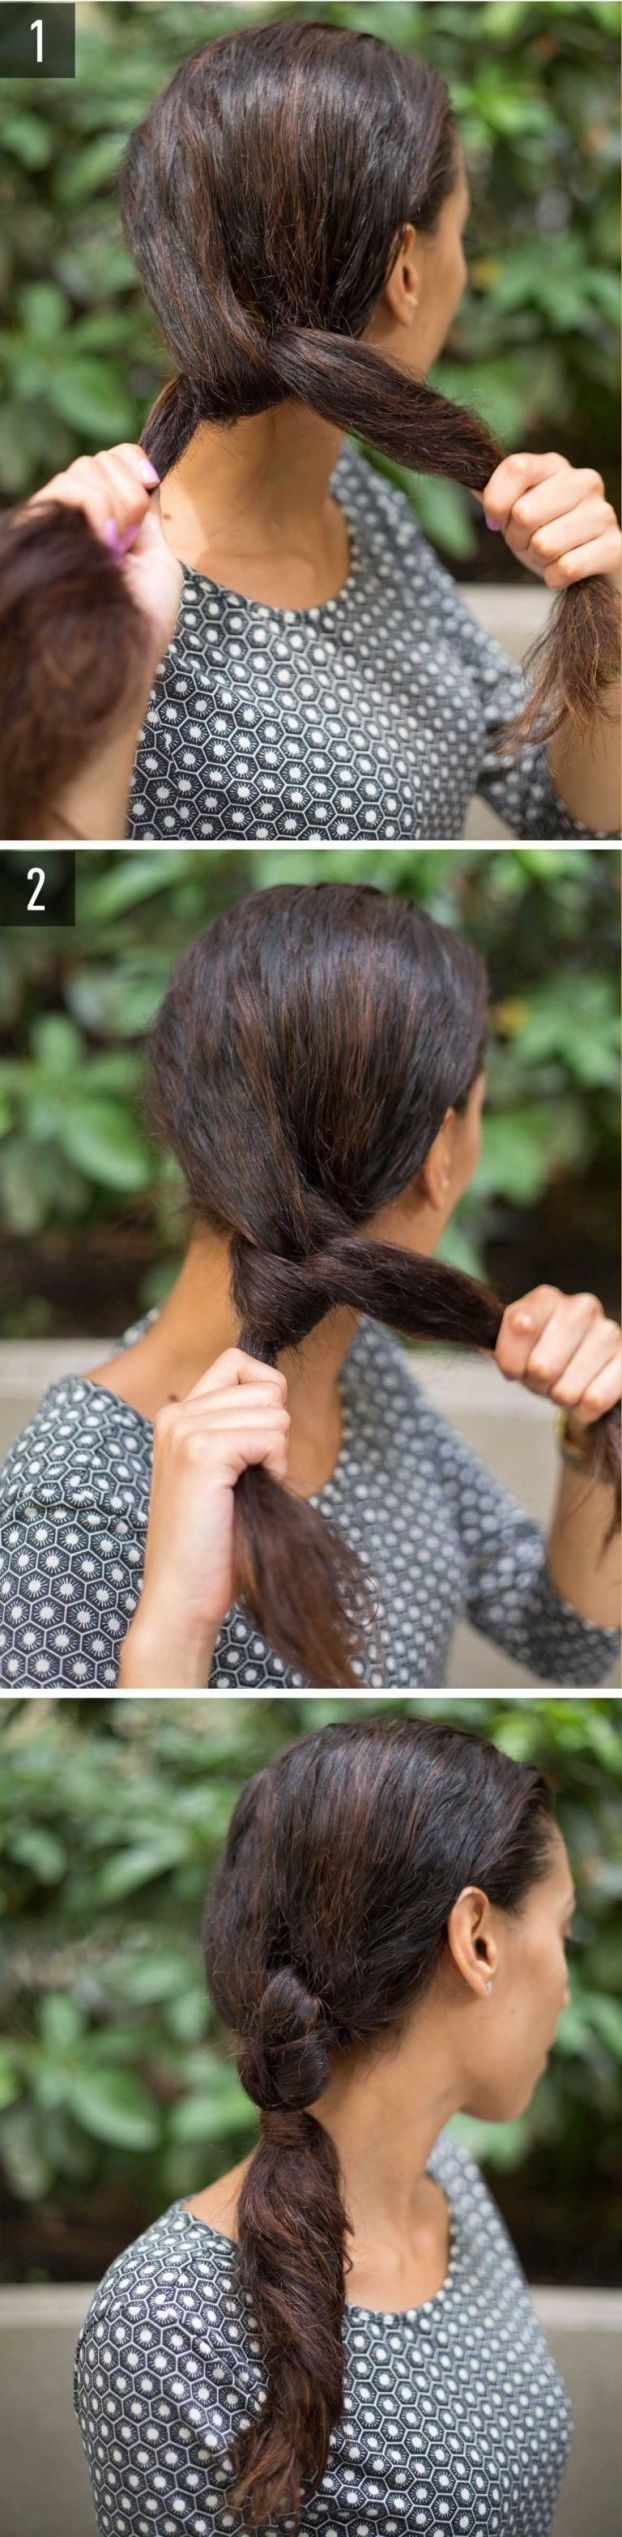 Easy-Ways-to-Style-Hair-4